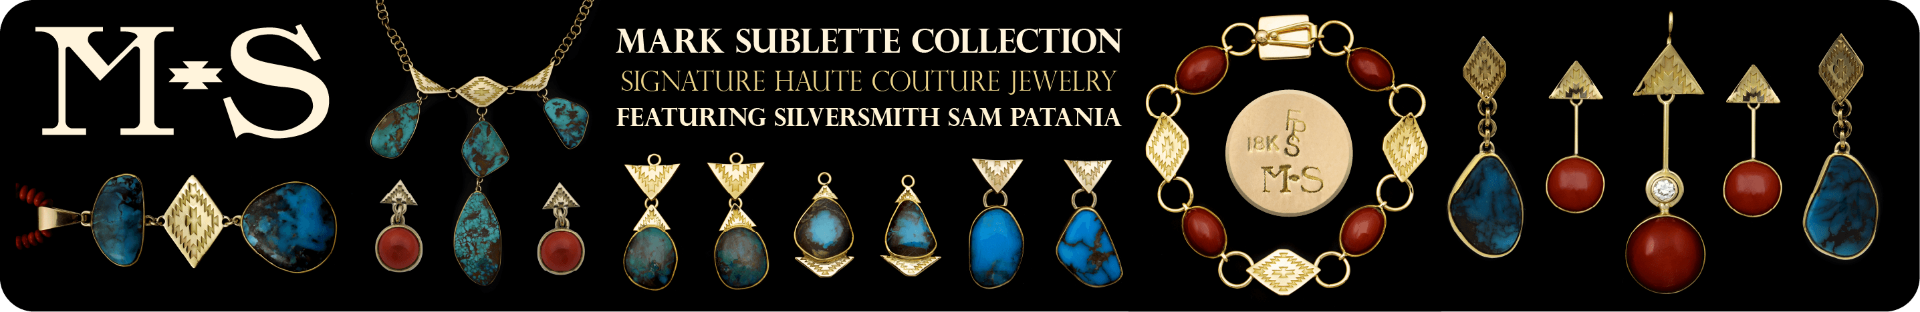 Mark Sublette Collection Haute Couture Jewelry